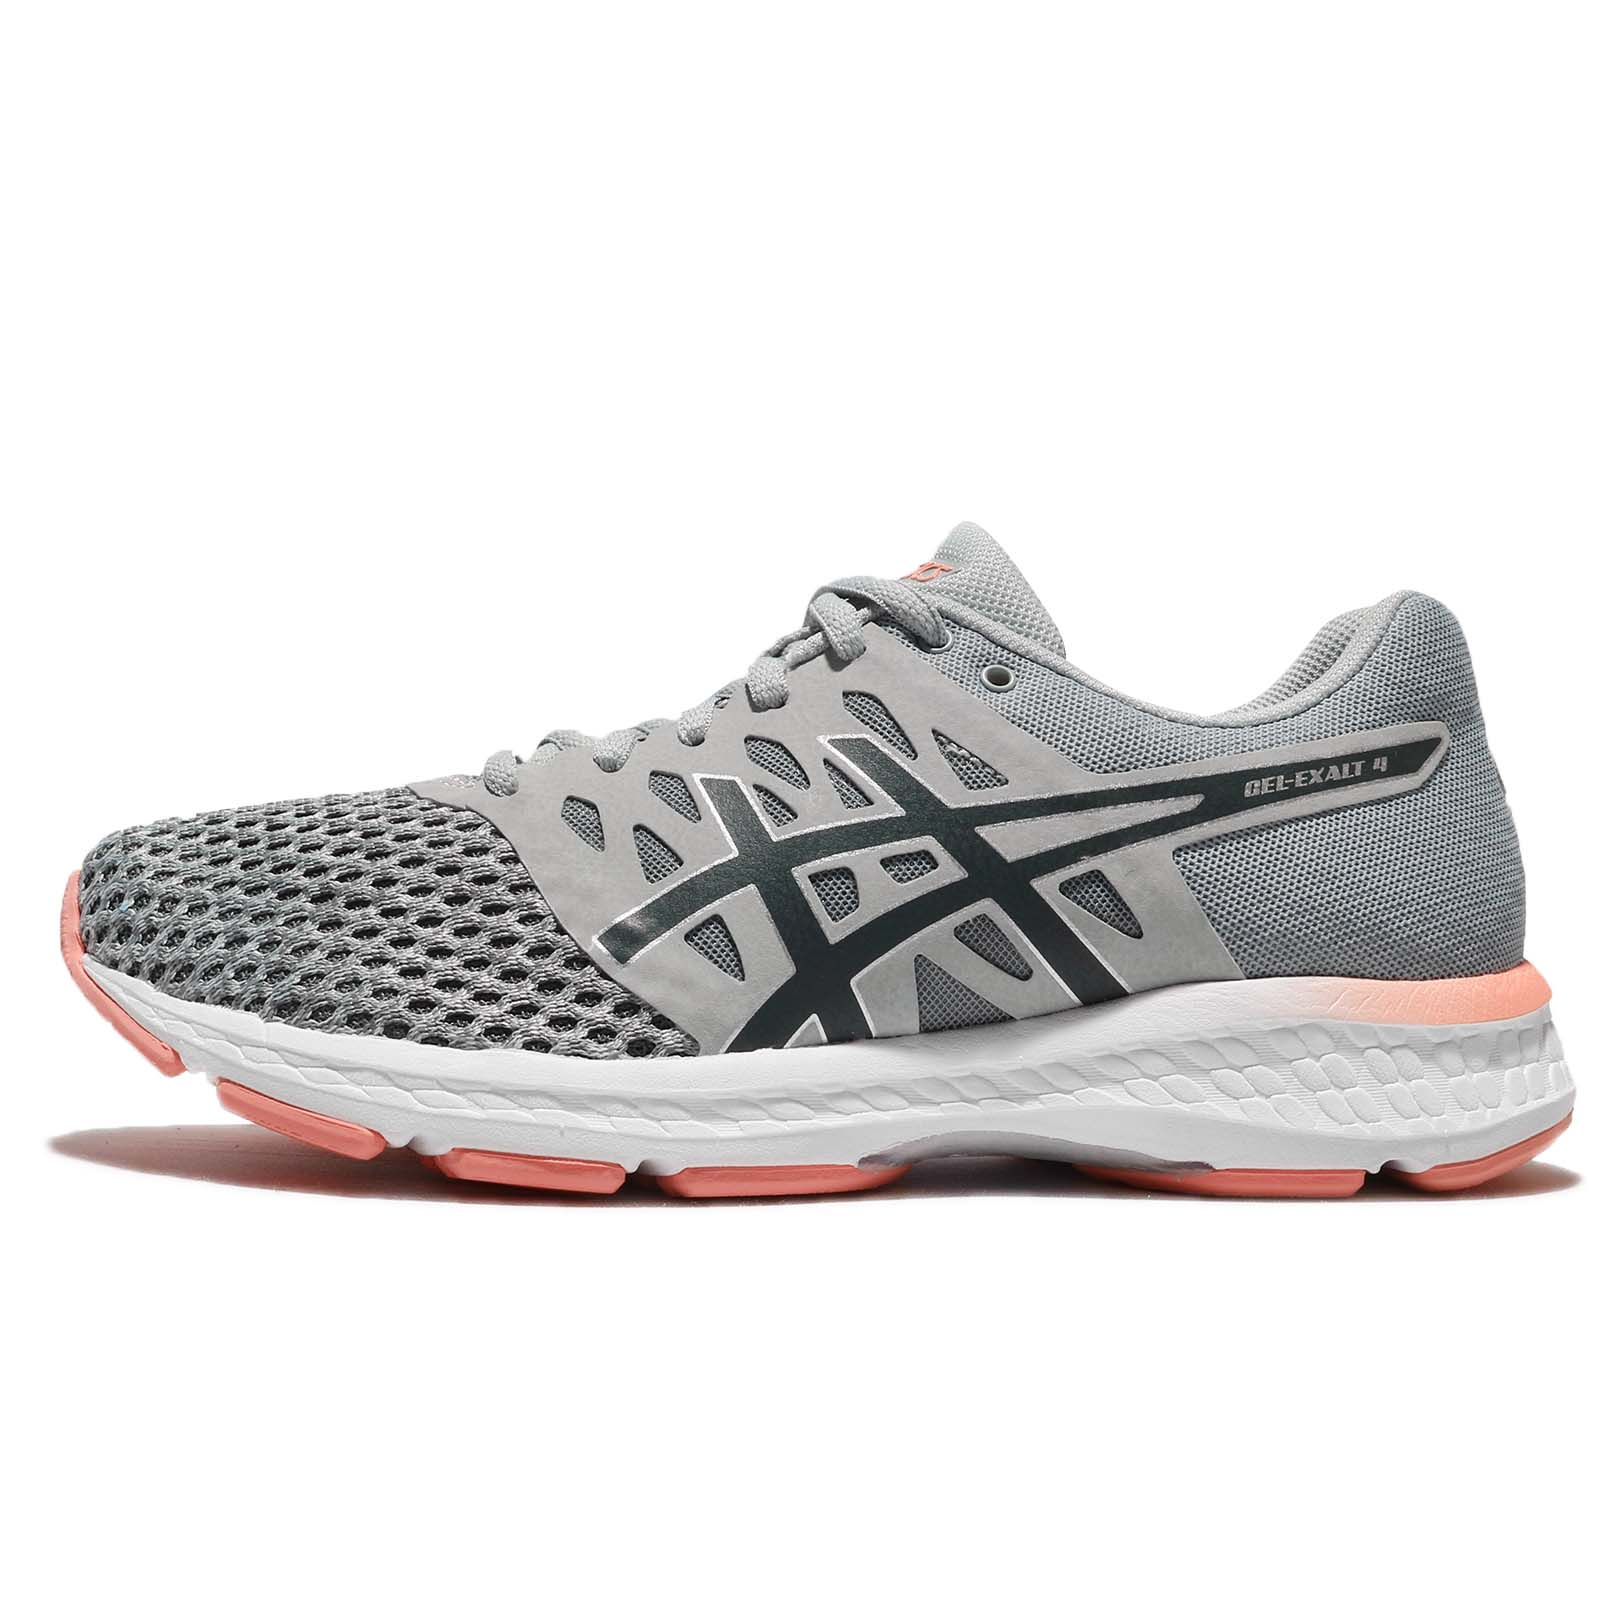 Asics Gel Exalt 4 Grey Carbon Pink Women Road Running Athletic Shoes T7E5N 9697